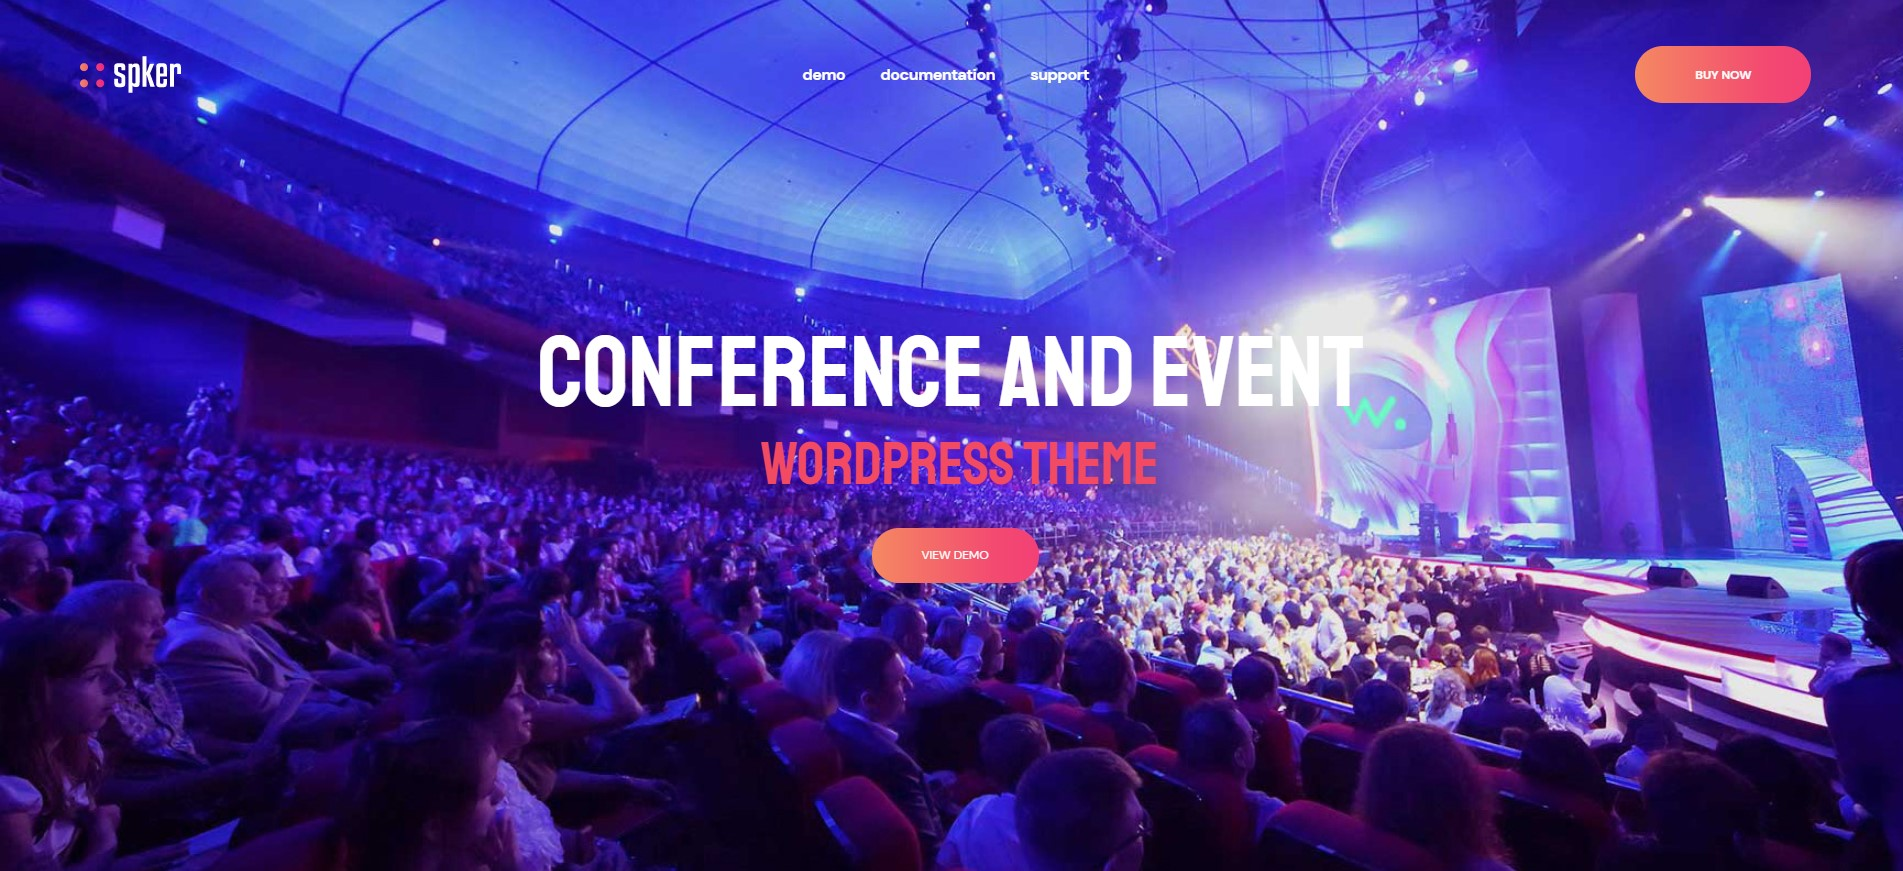 spker conference event wordpress theme